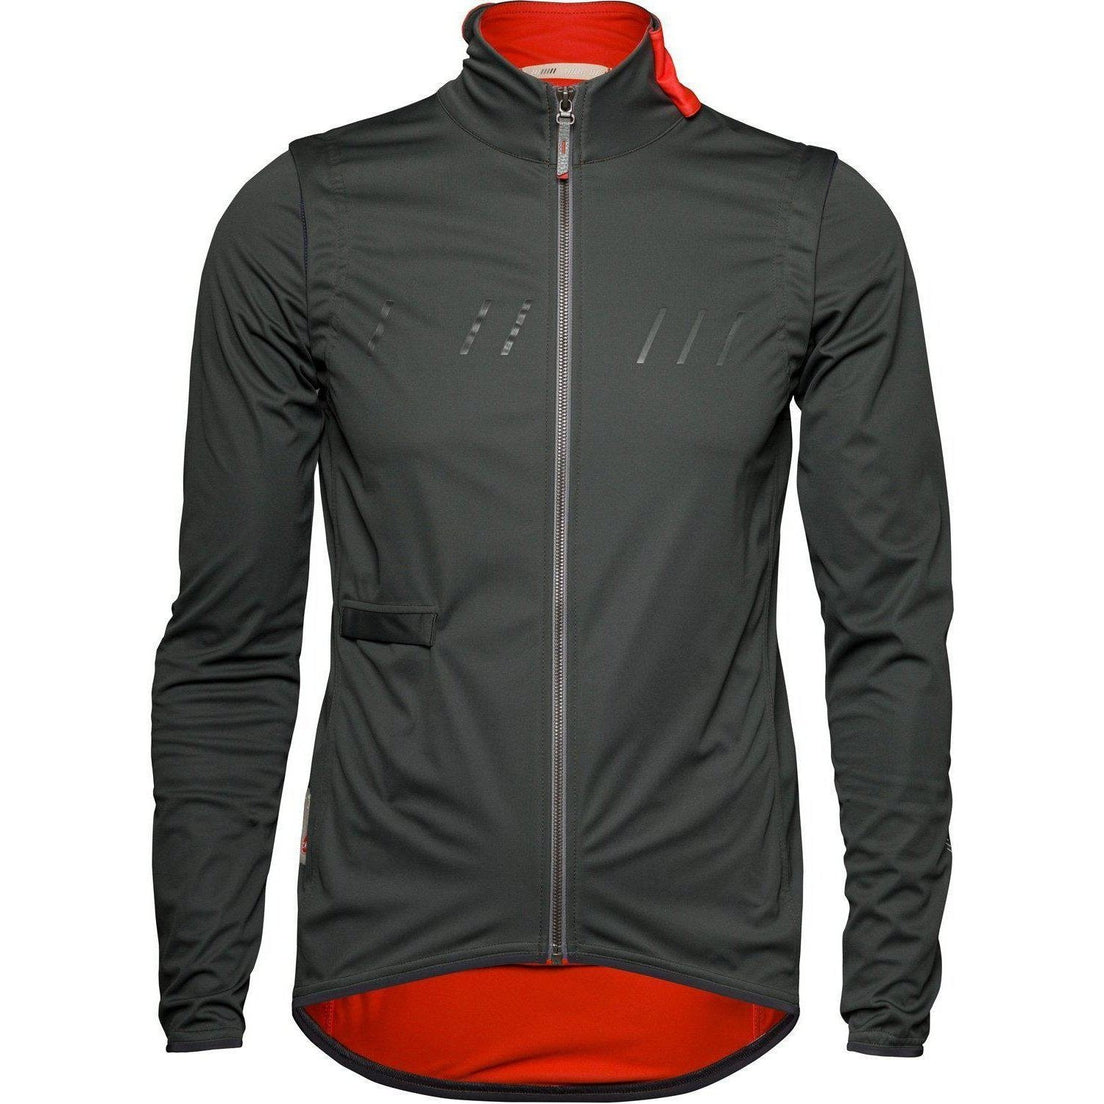 Chpt3-Chpt3 Rocka 1.64 Long Sleeve Jacket Mk2-Climbing Ivy-36-CST920013207536-saddleback-elite-performance-cycling